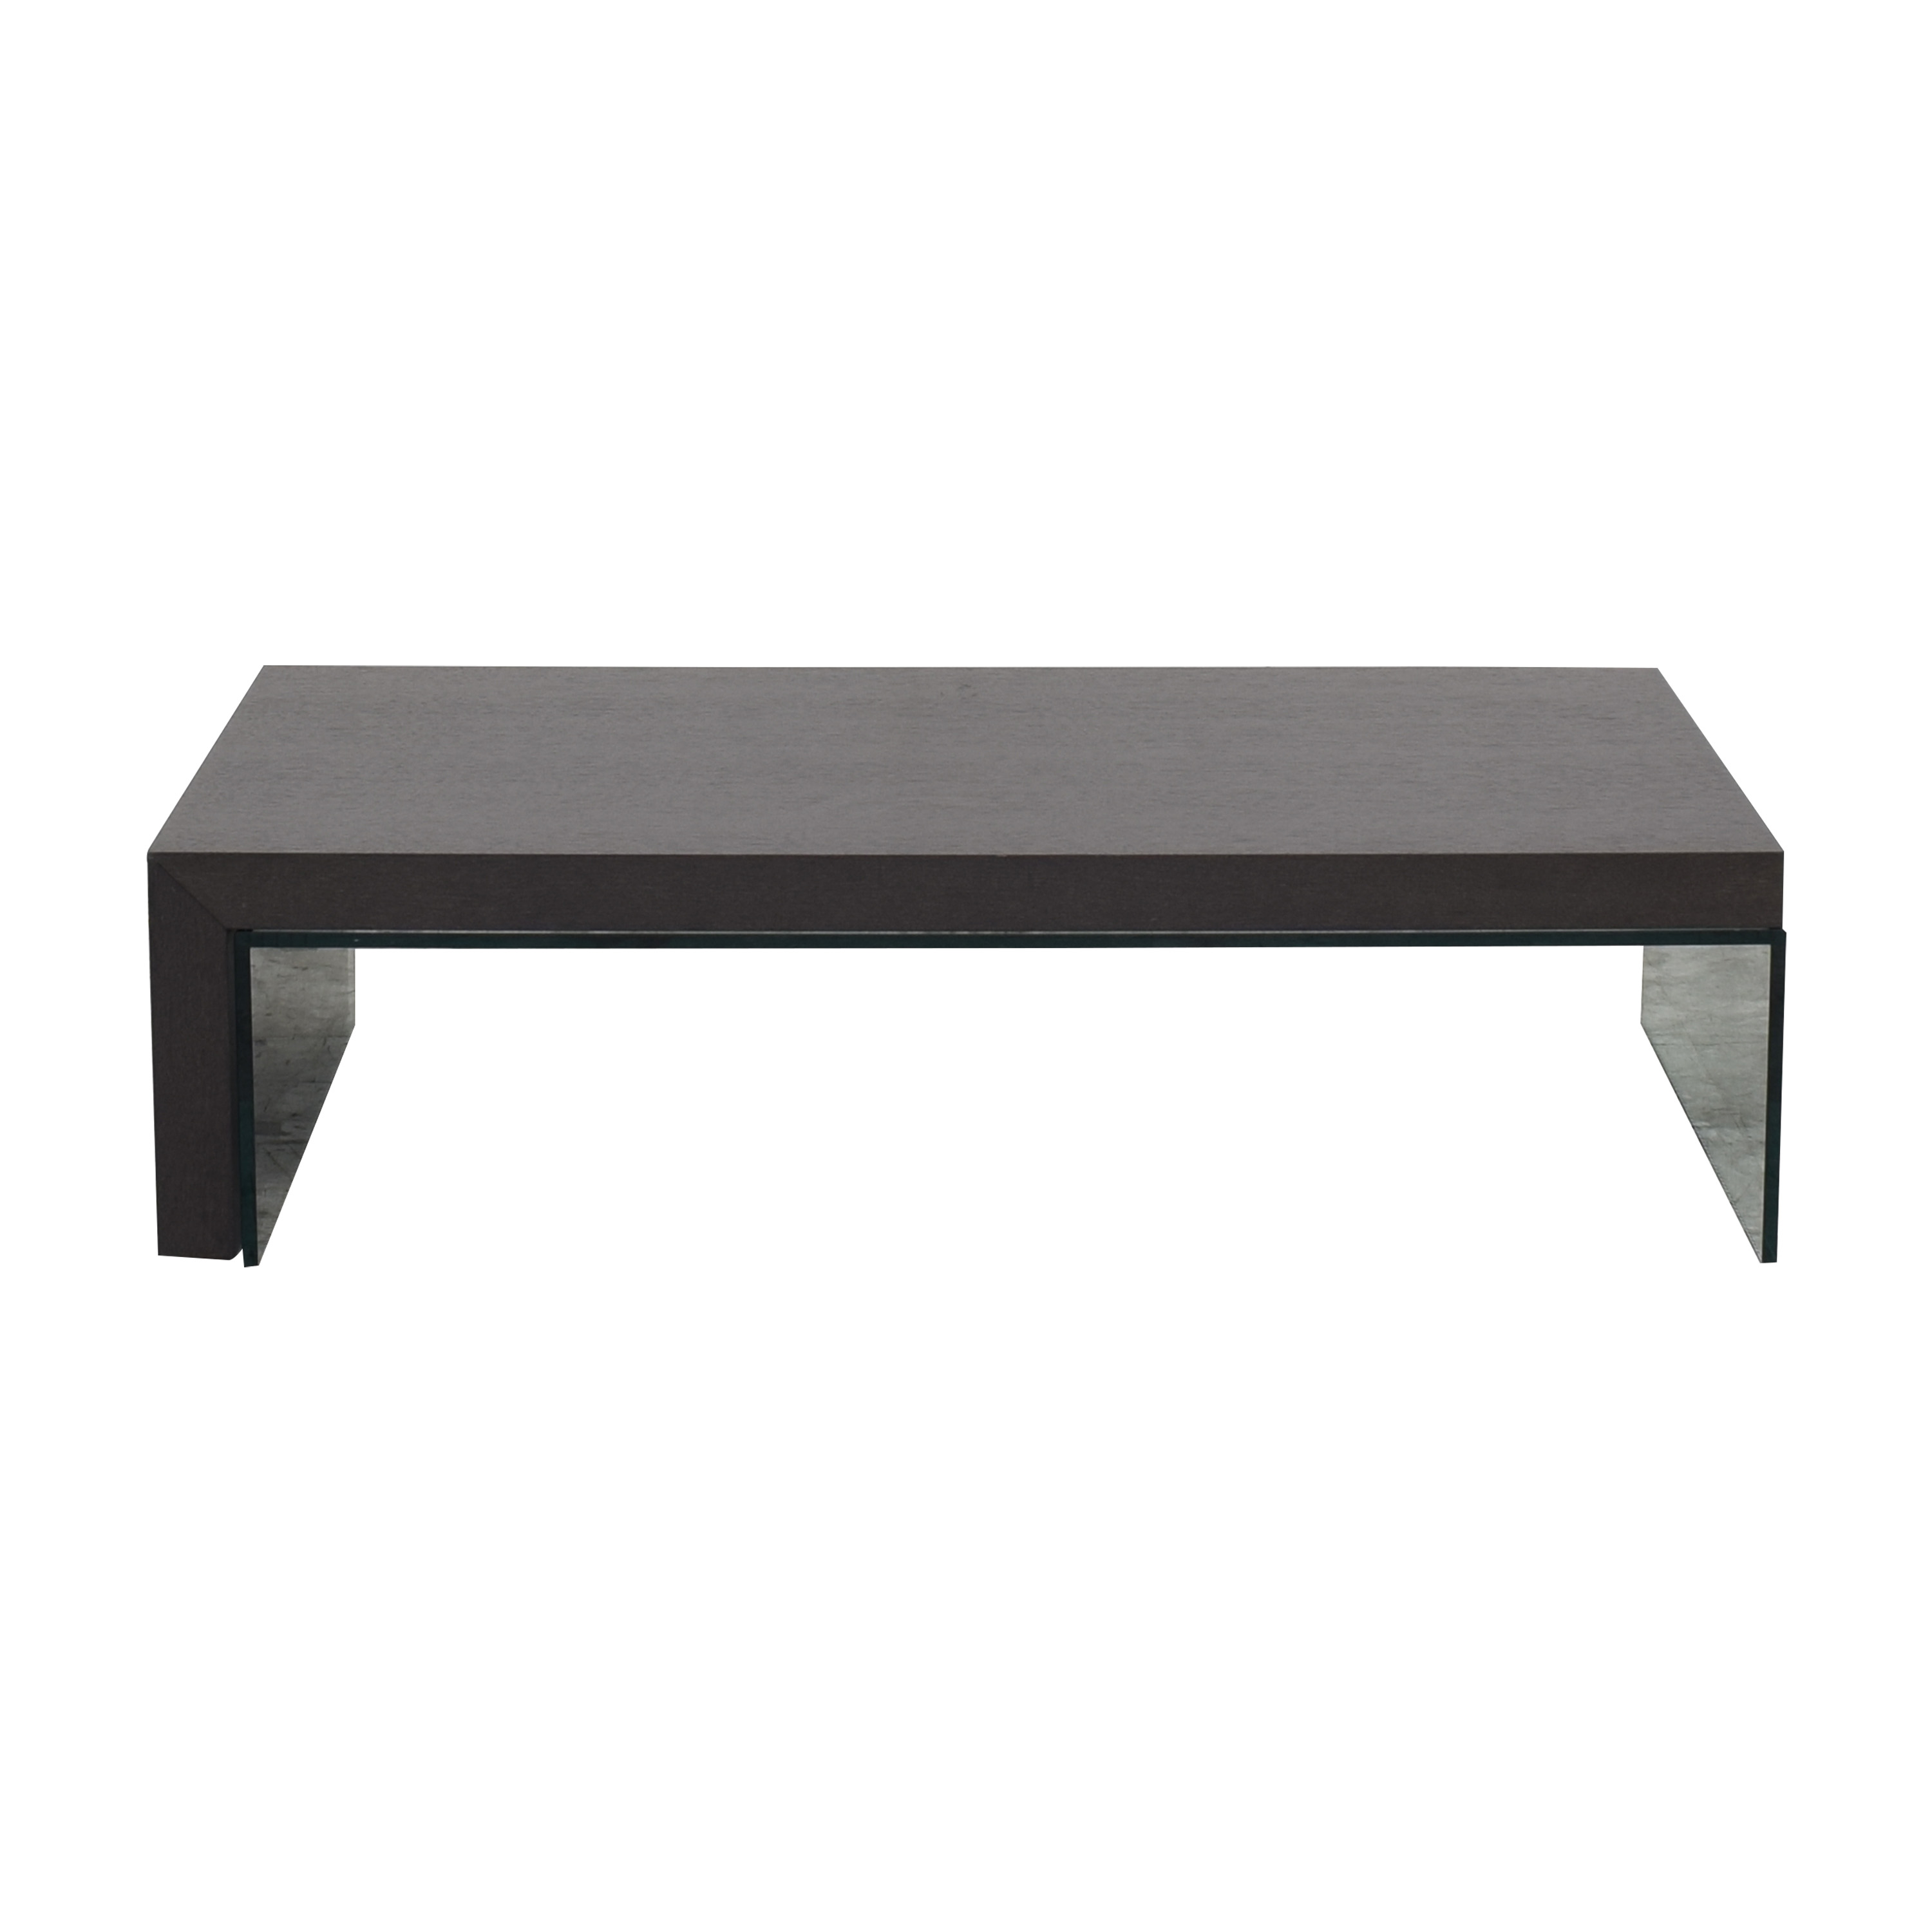 Ligne Roset Ligne Roset Coffee Table with Glass Extension dimensions